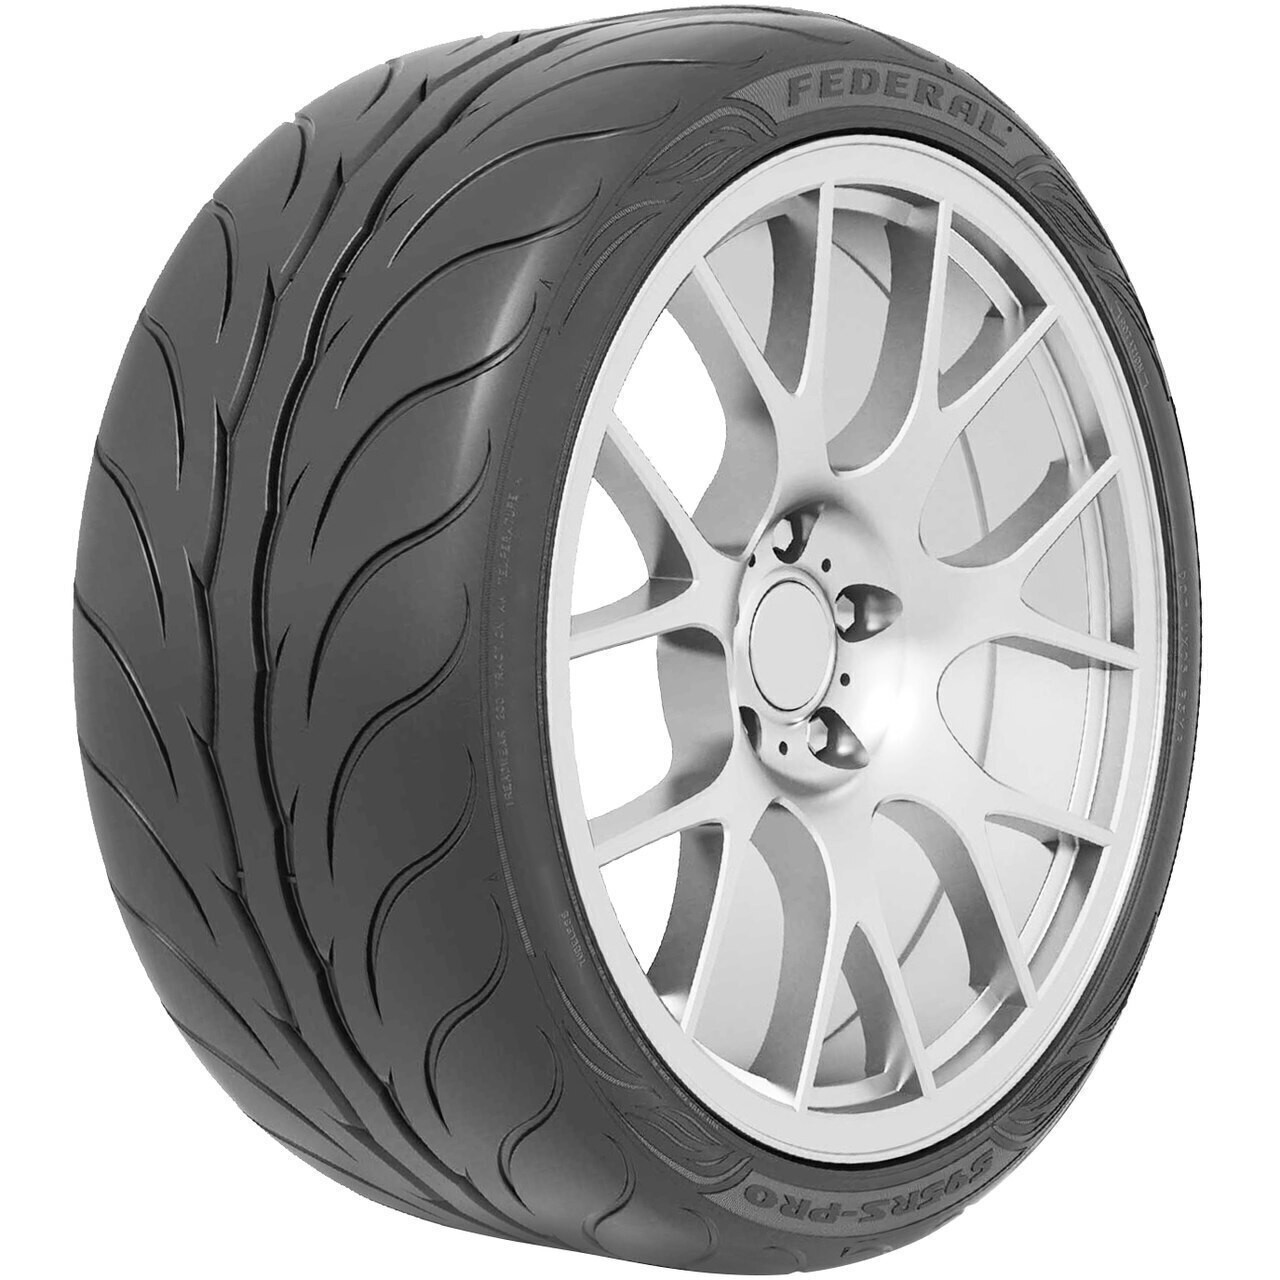 255/35ZR19 FEDERAL 595RS-PRO 96Y XL 200AAA***RACING TIRE***